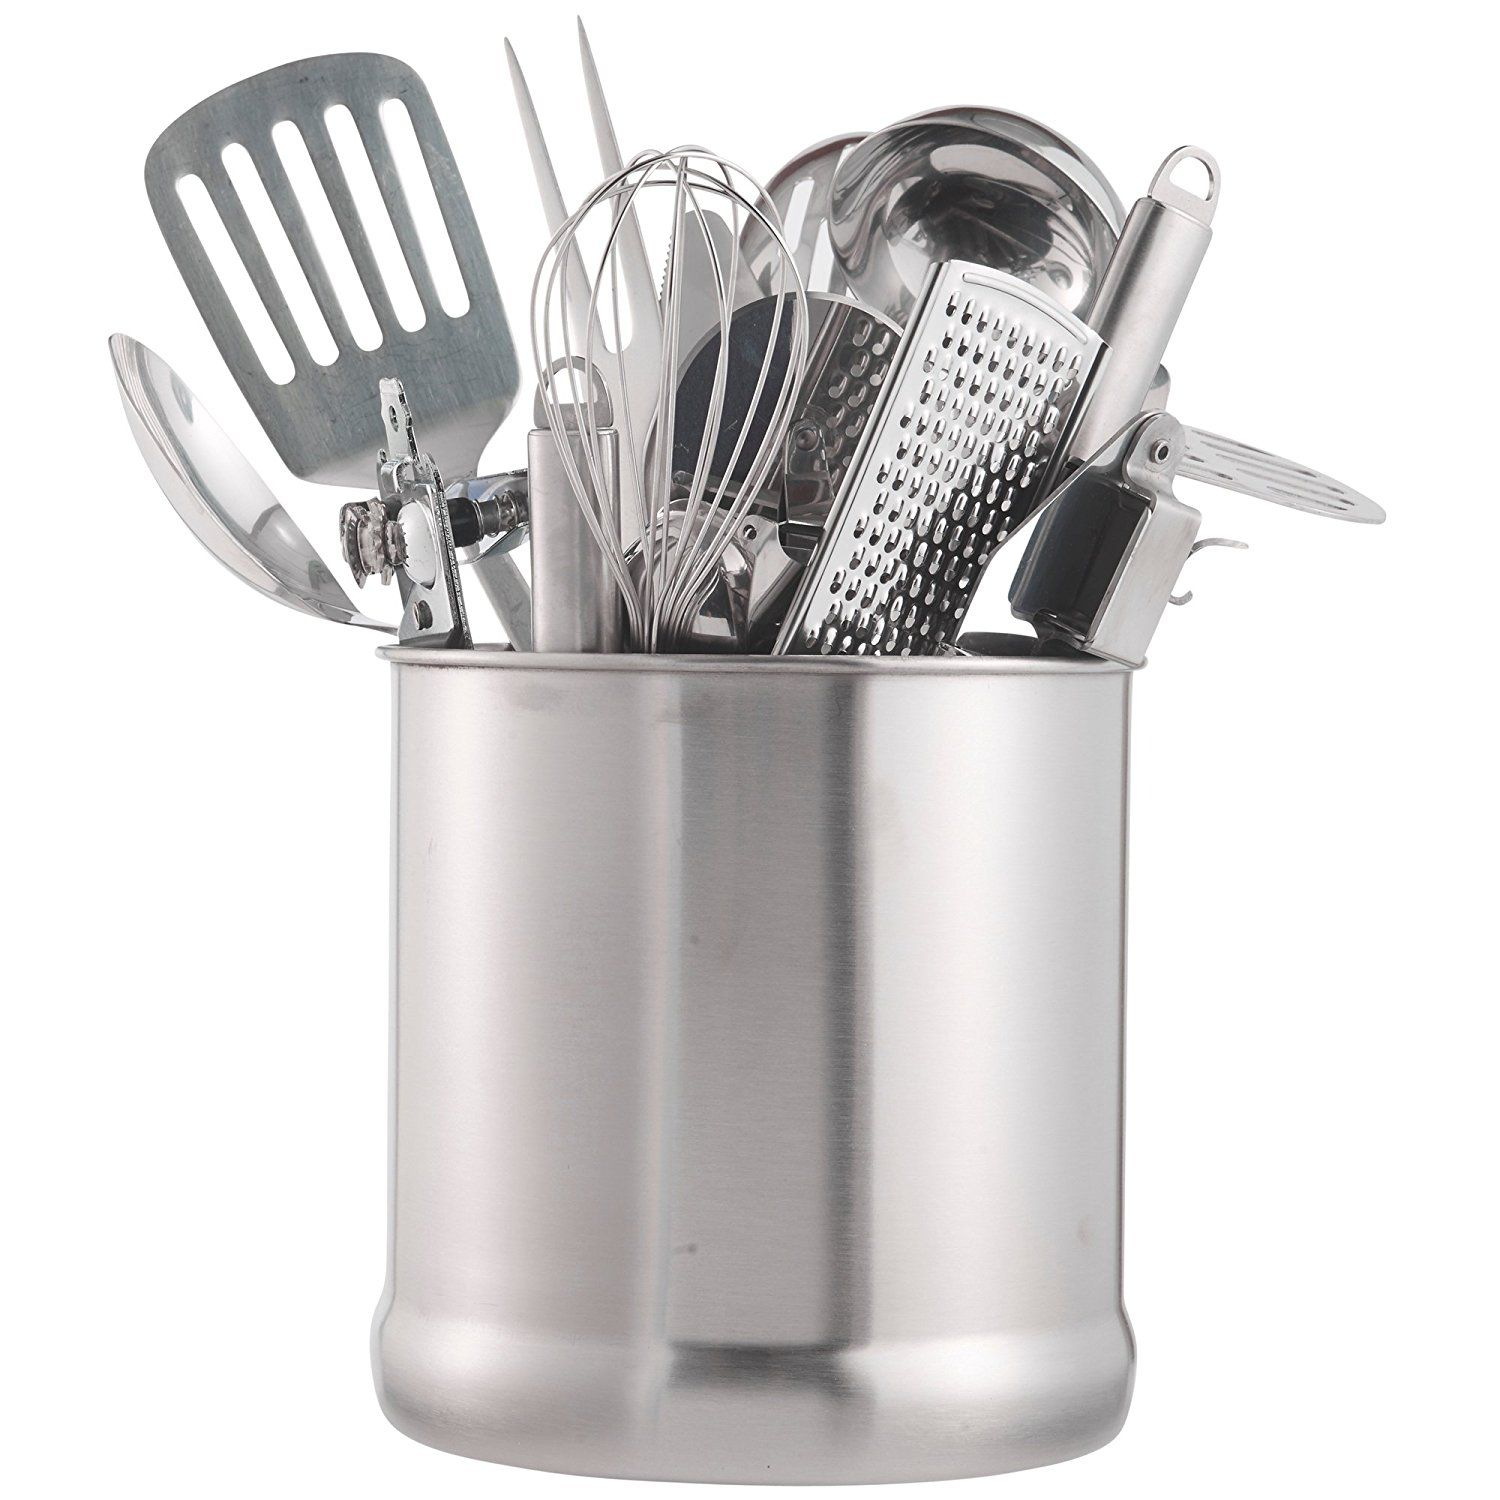 Kitchen Utensil Caddy Cooking Tools Holder Stainless Steel Cutlery Holder Kitchen Utensil Holder Pot